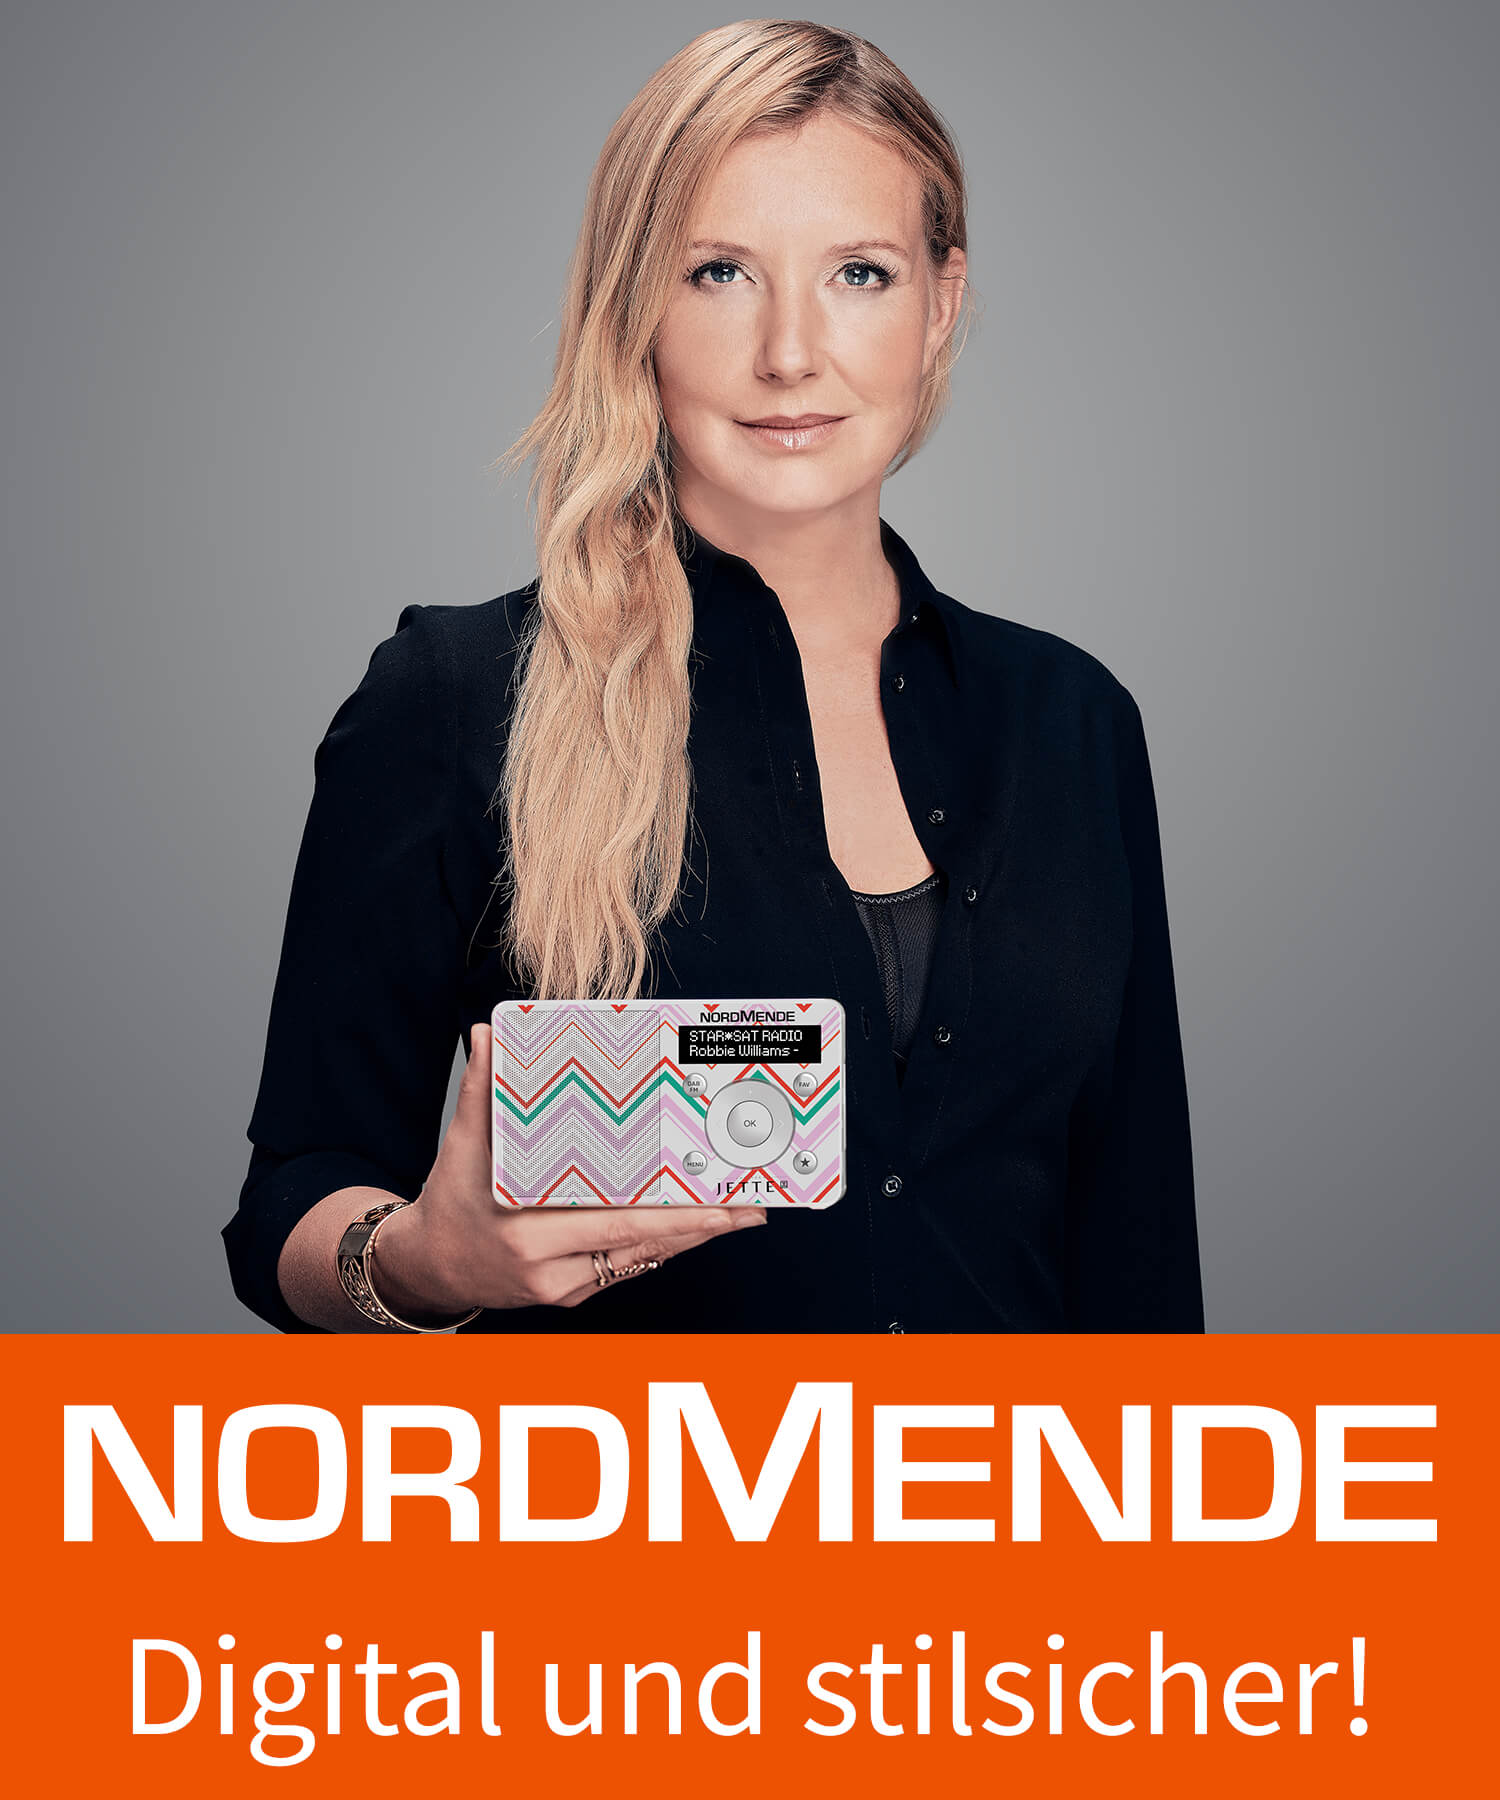 NORDMENDE Digital und stilsicher! by Jette Joop